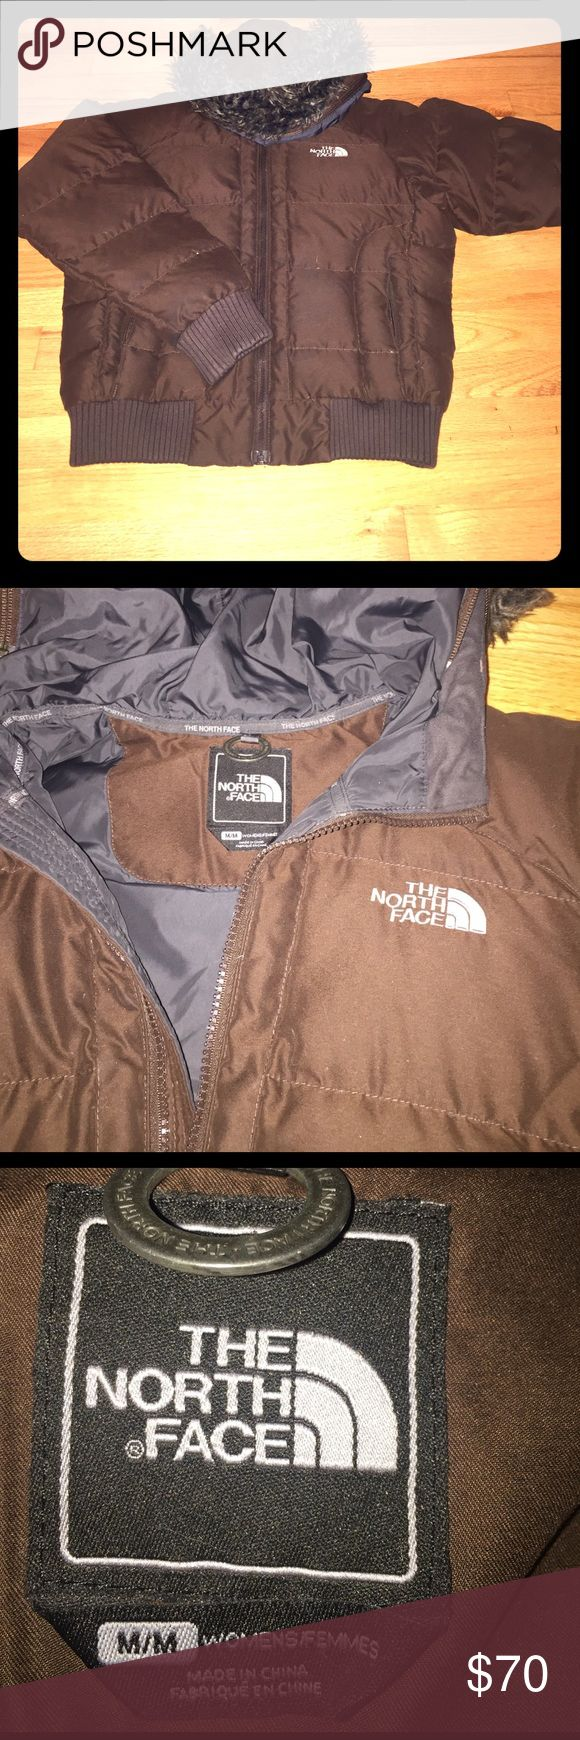 North face winter jacket Brown North Face jacket with fur hood. It's in good condition and is a size medium! North Face Jackets & Coats Puffers